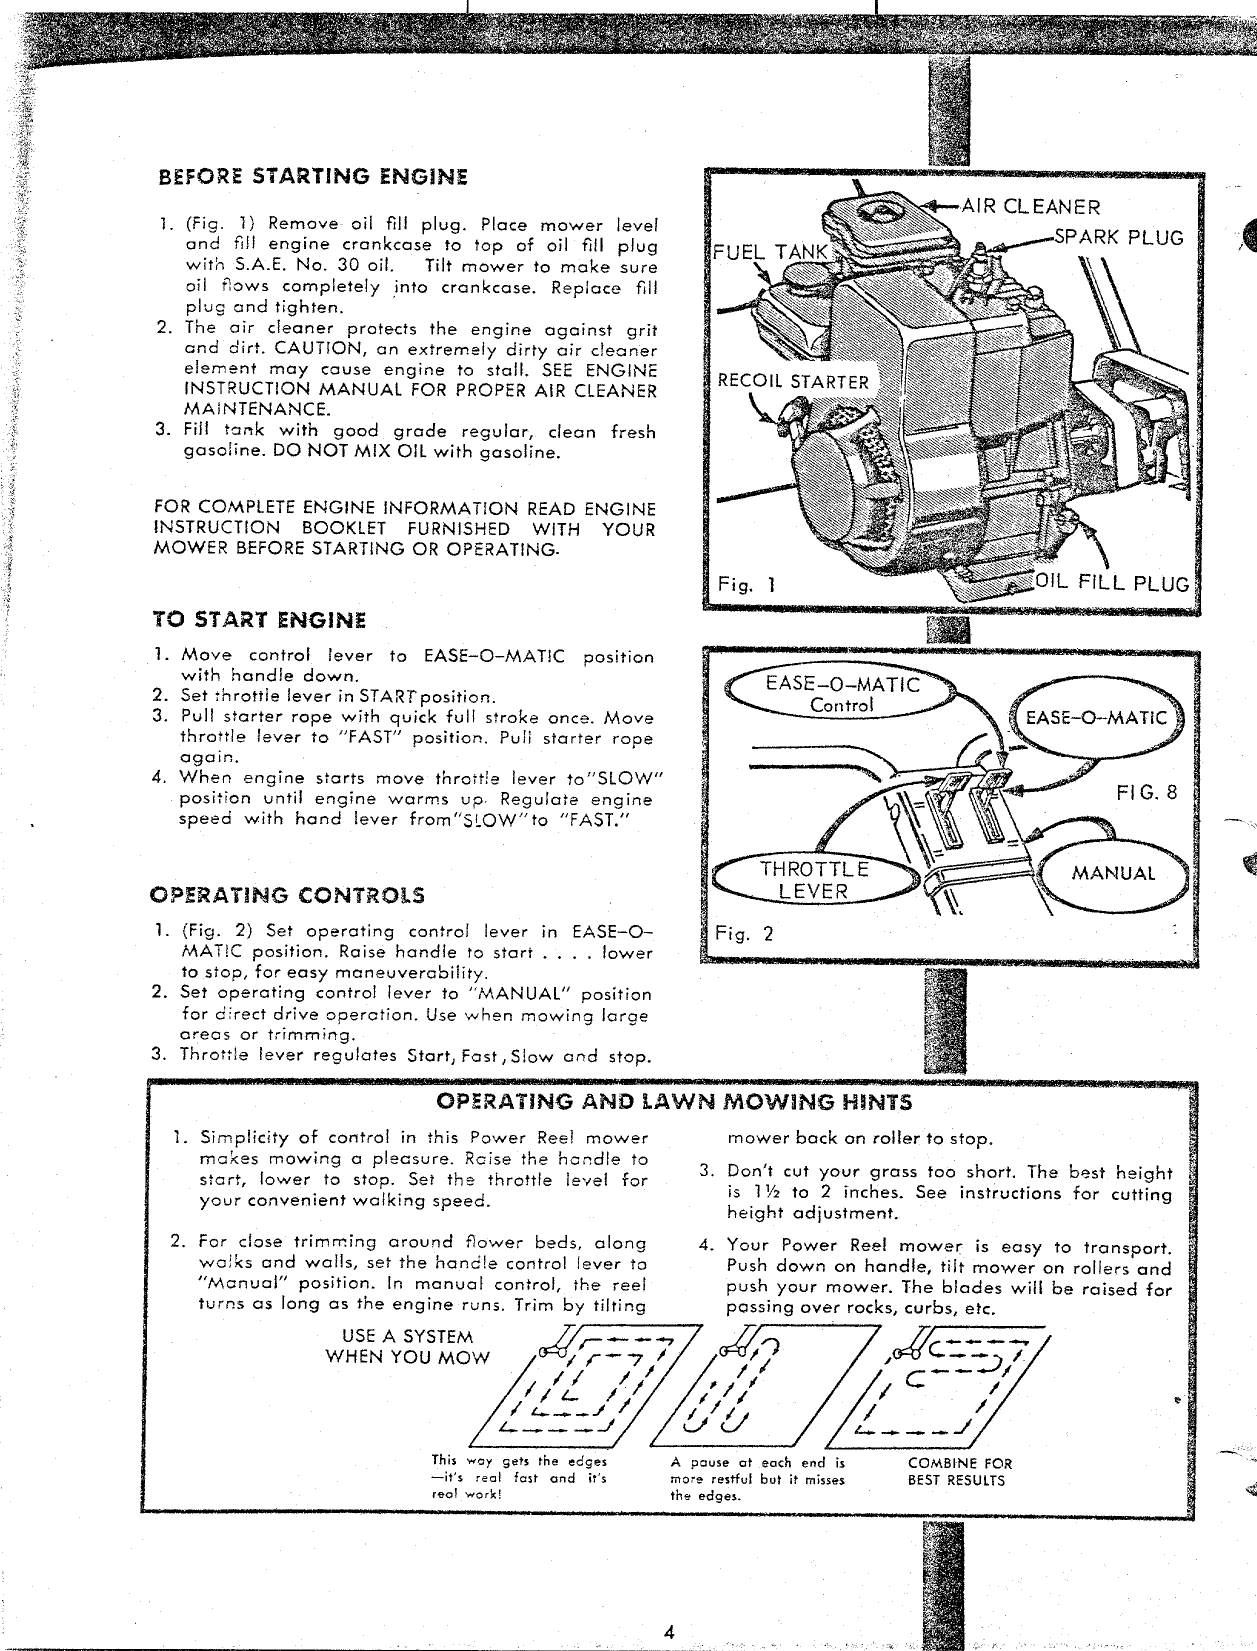 Holley 197 Manual Guide